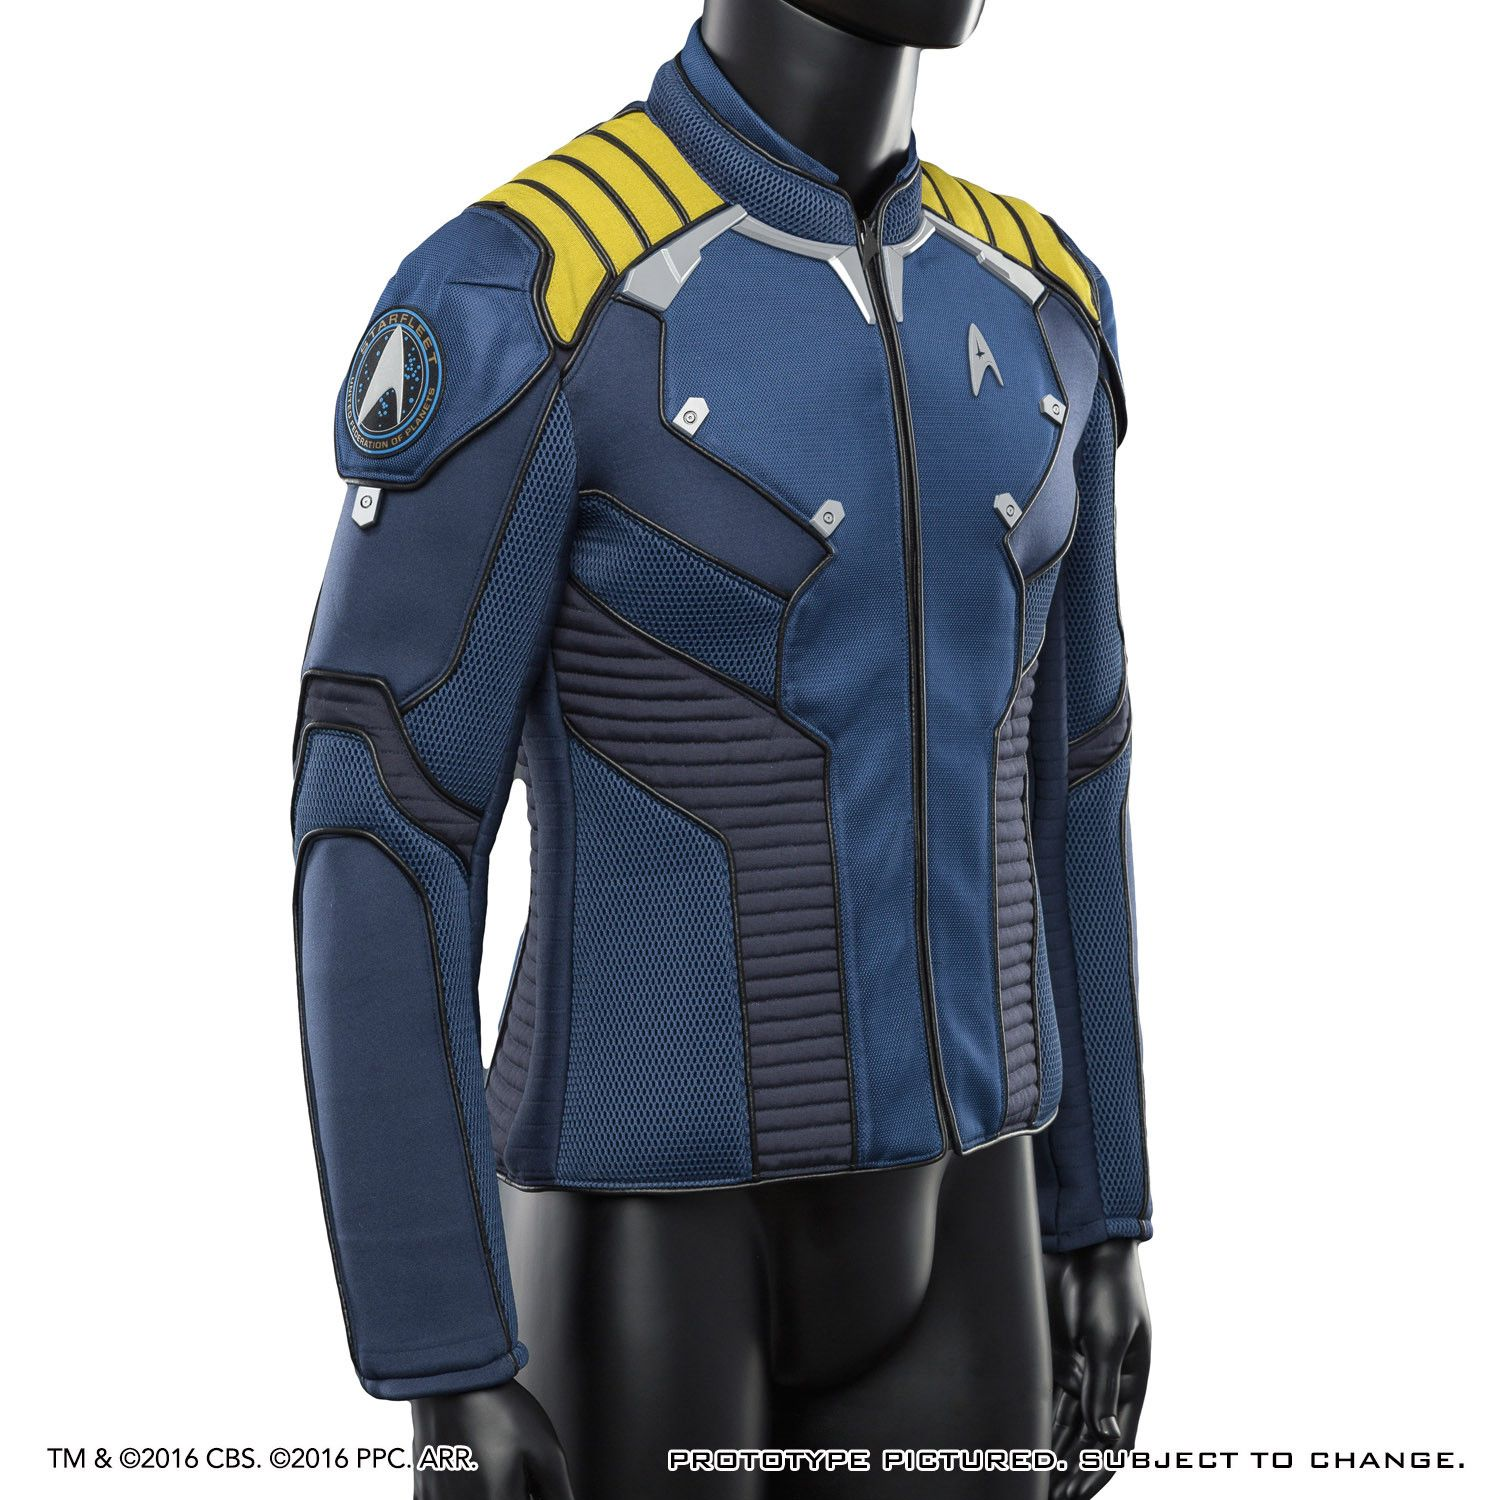 8474332c6 STAR TREK™: BEYOND - Starfleet Survival Suit Men's Jacket (Pre-Order ...